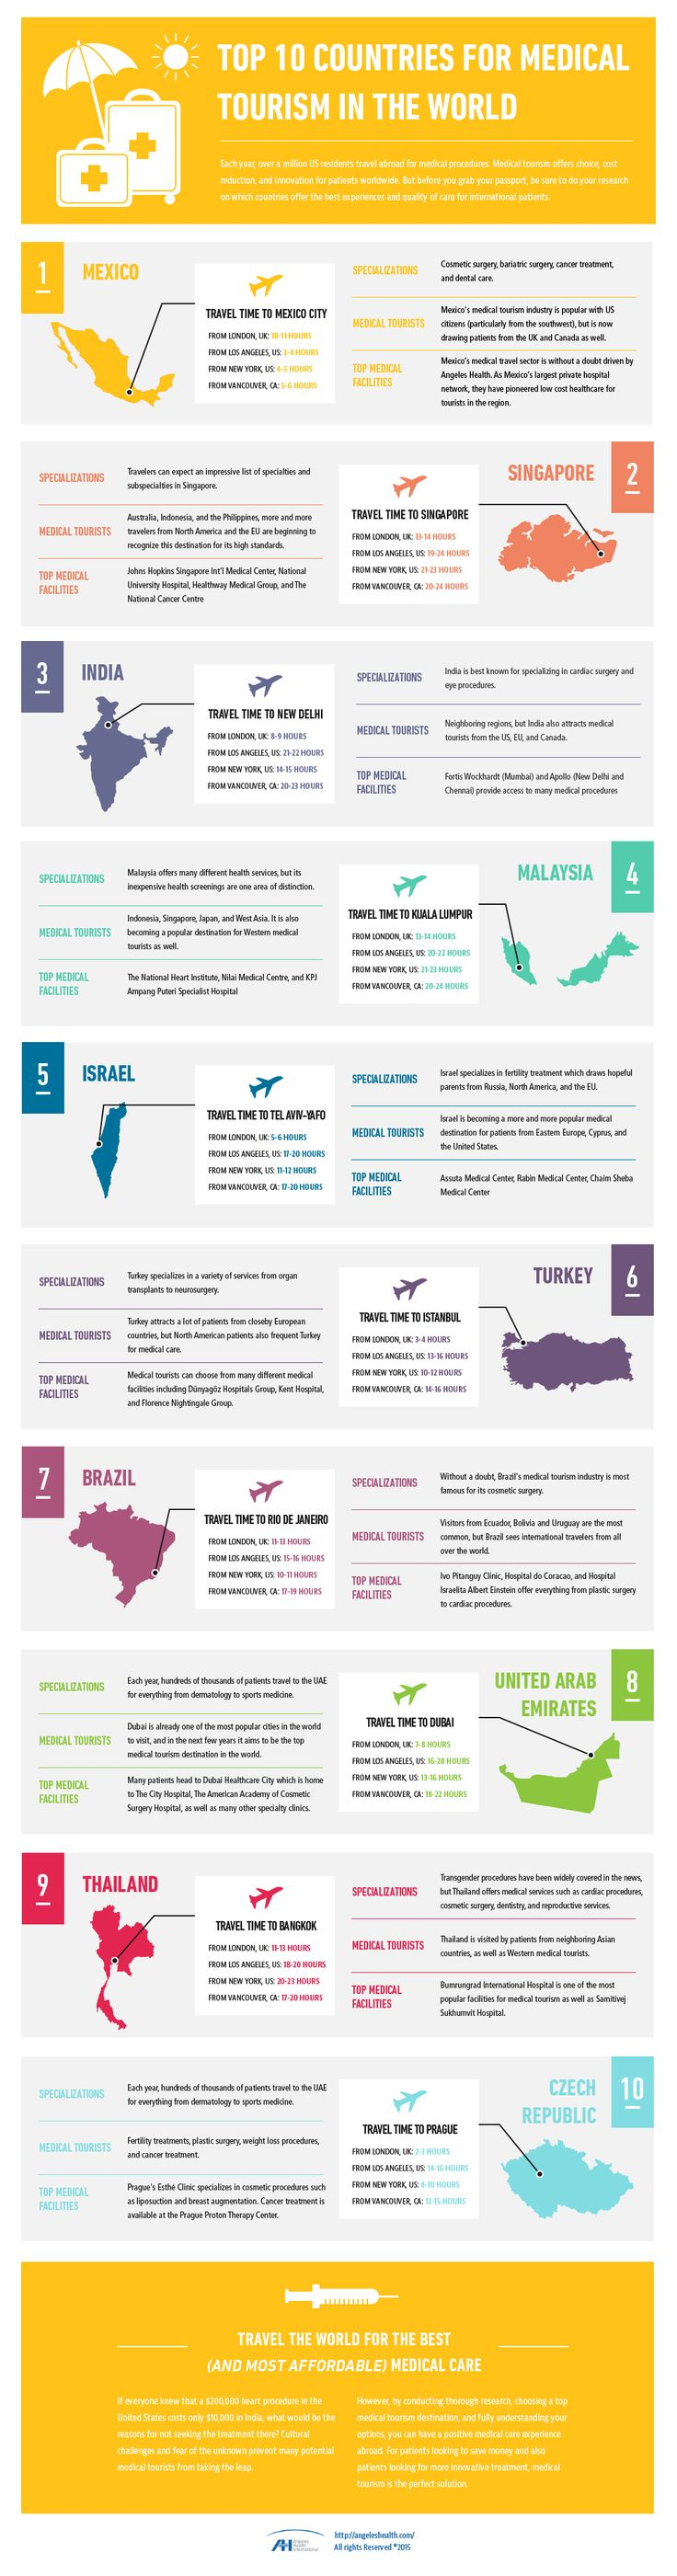 Top 10 Countries For Medical Tourism In The World